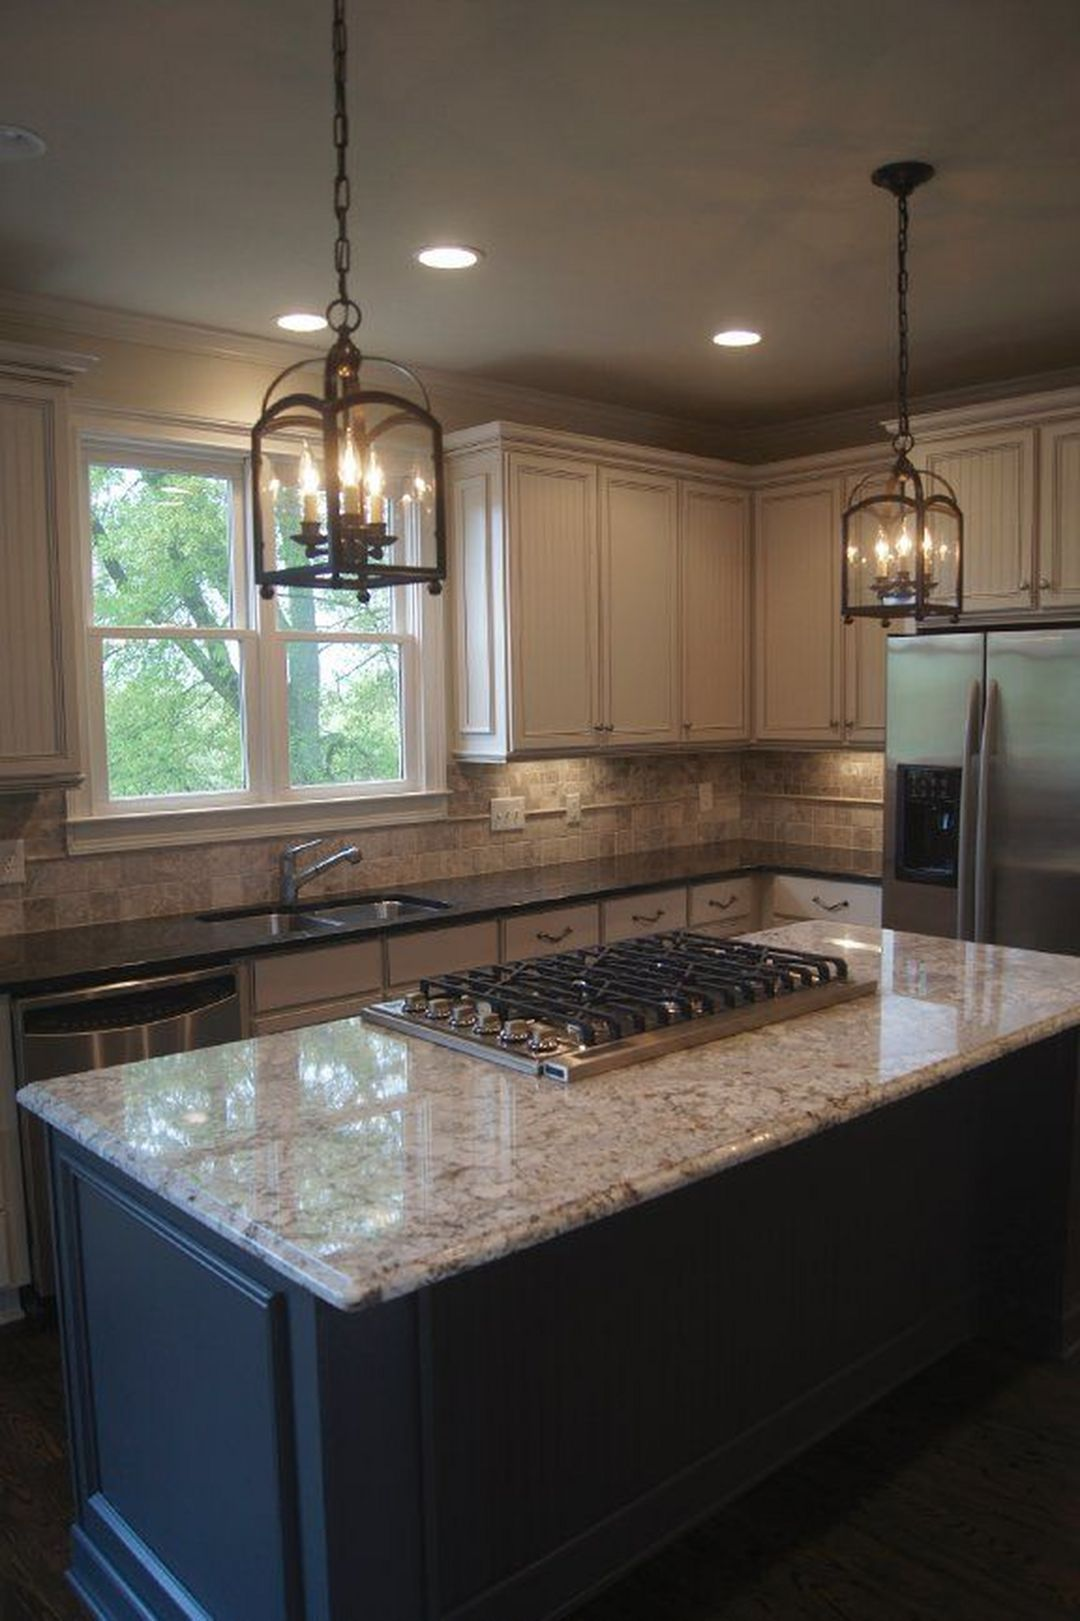 15 gorgeous light cabinets dark countertops design ideas you have to see home and apartm on kitchen ideas with dark cabinets id=35840